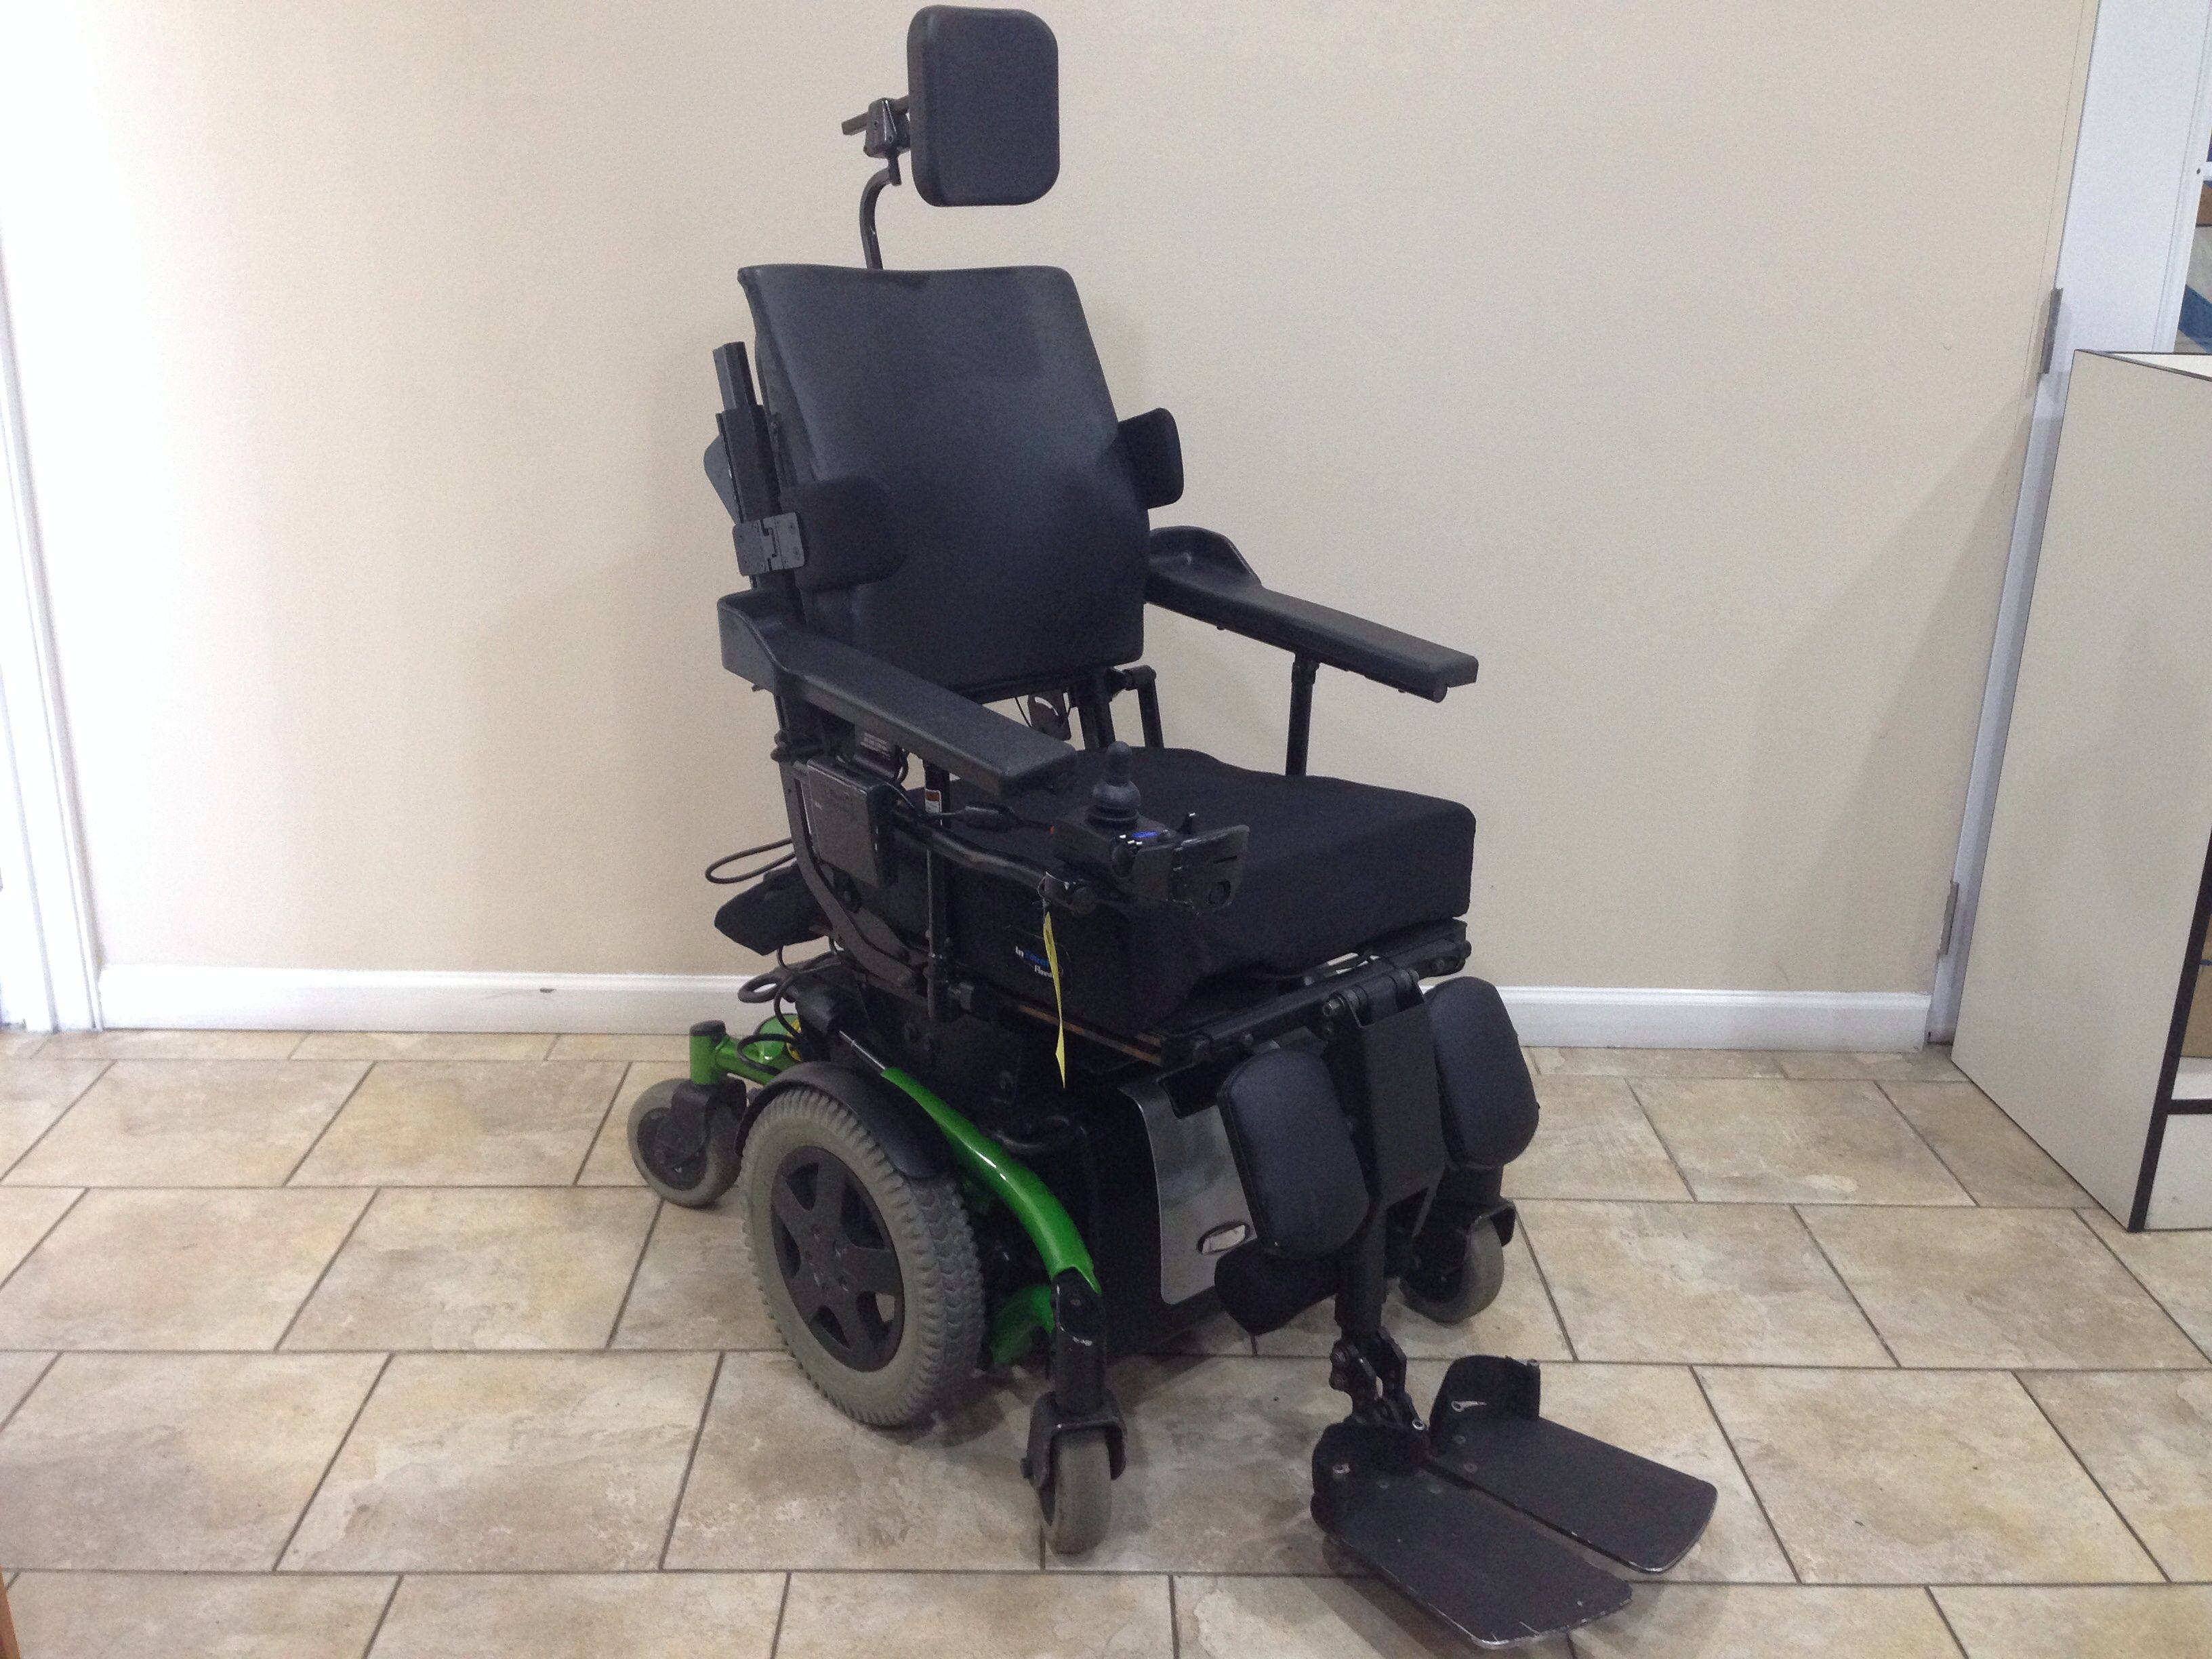 Pronto Power Chair Invacare Tdx Sp Rehab Power Tilt Recline Legrest Used